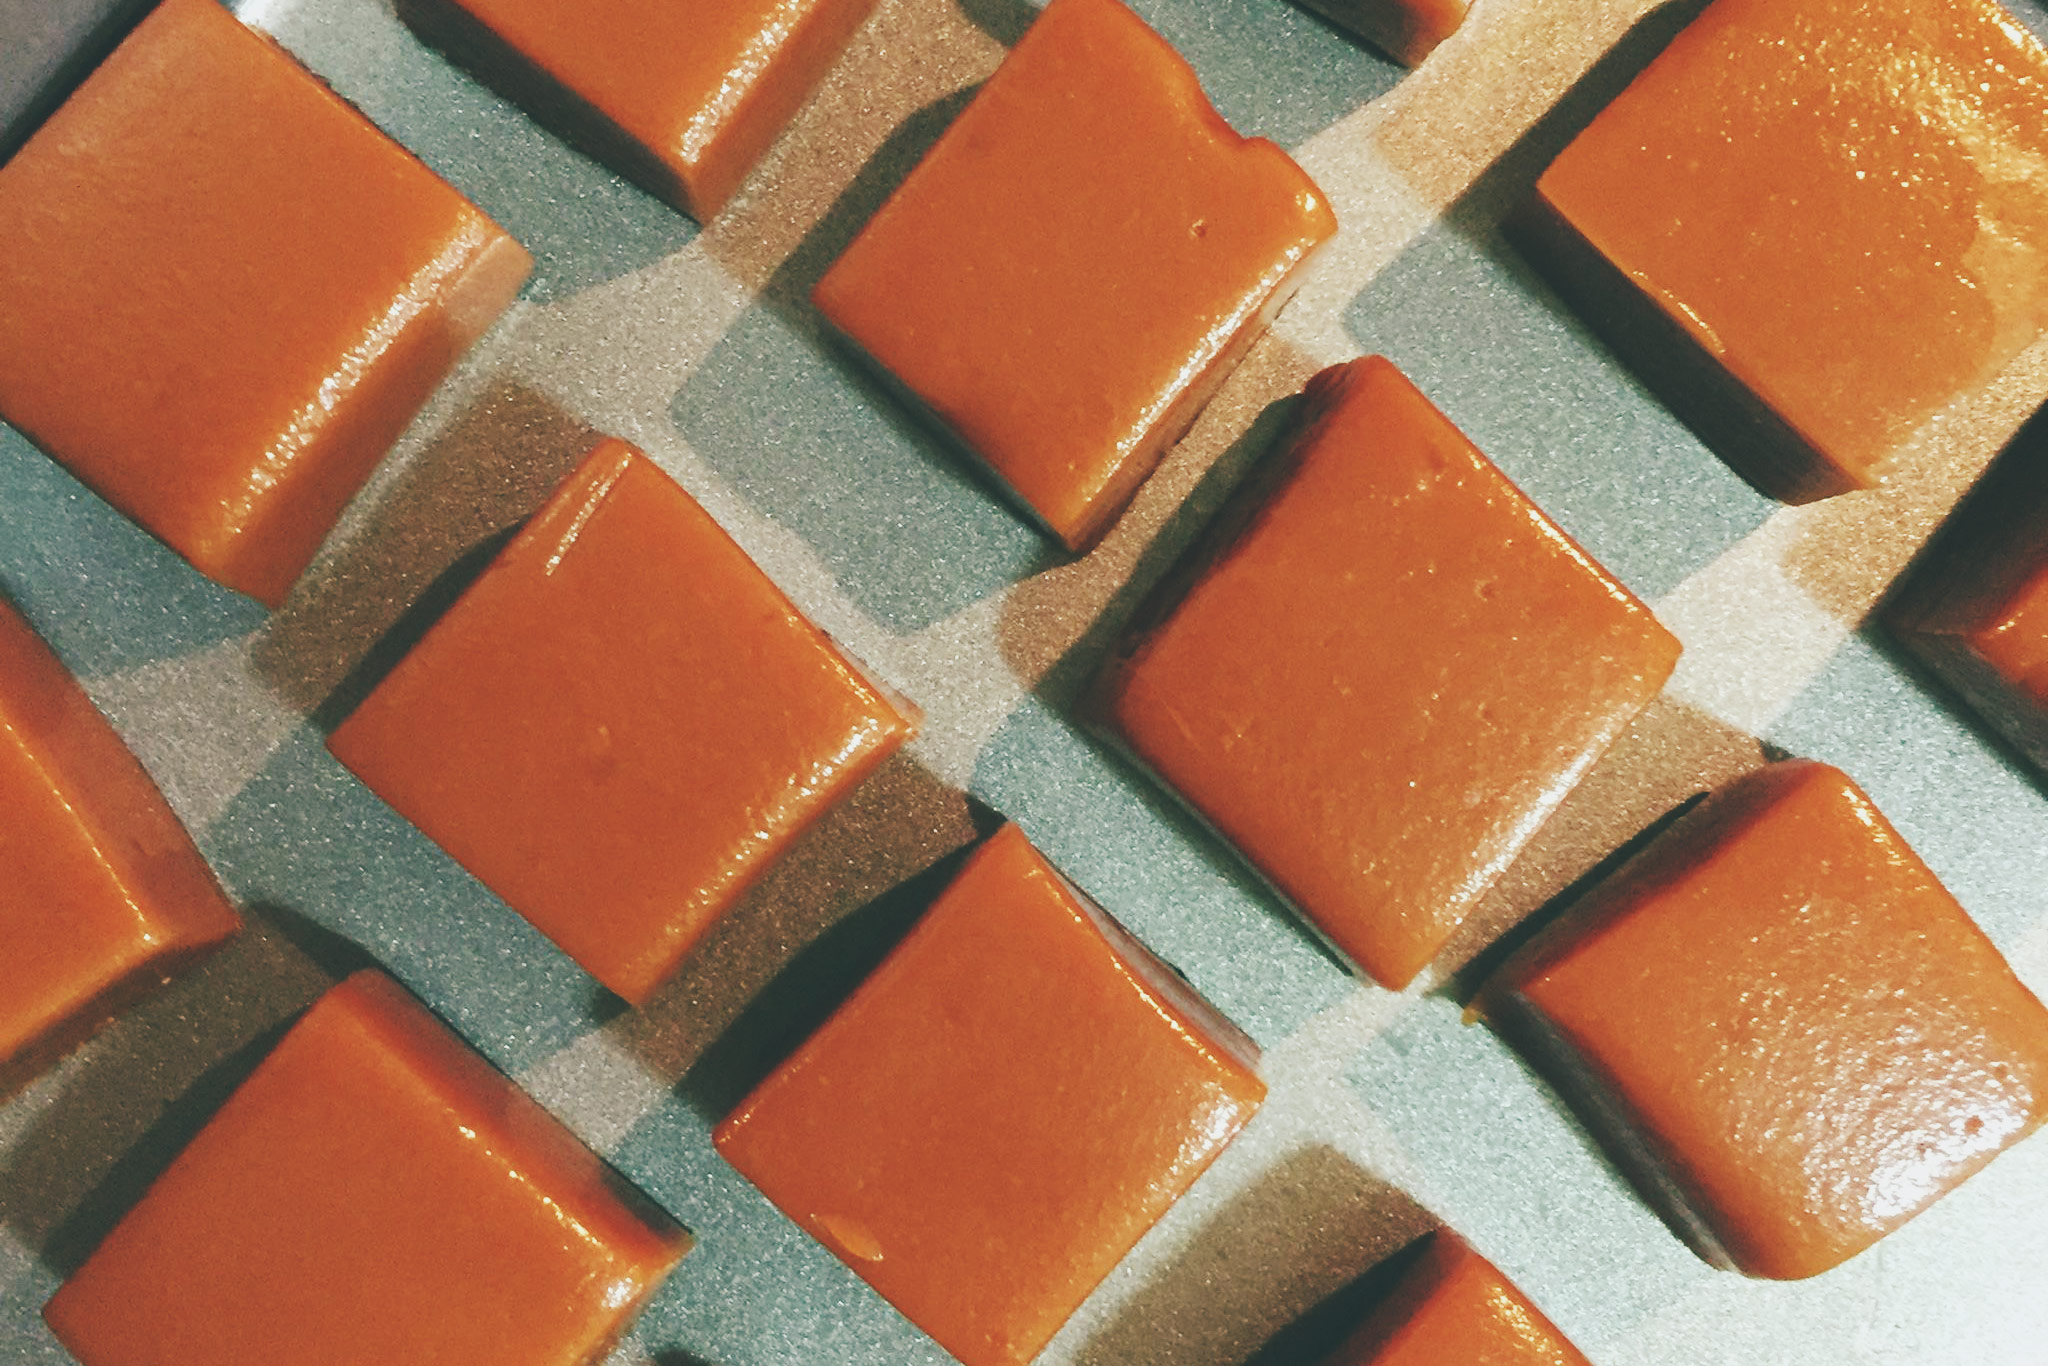 ChezSlaughter Chocolate Offers Artisan Caramels